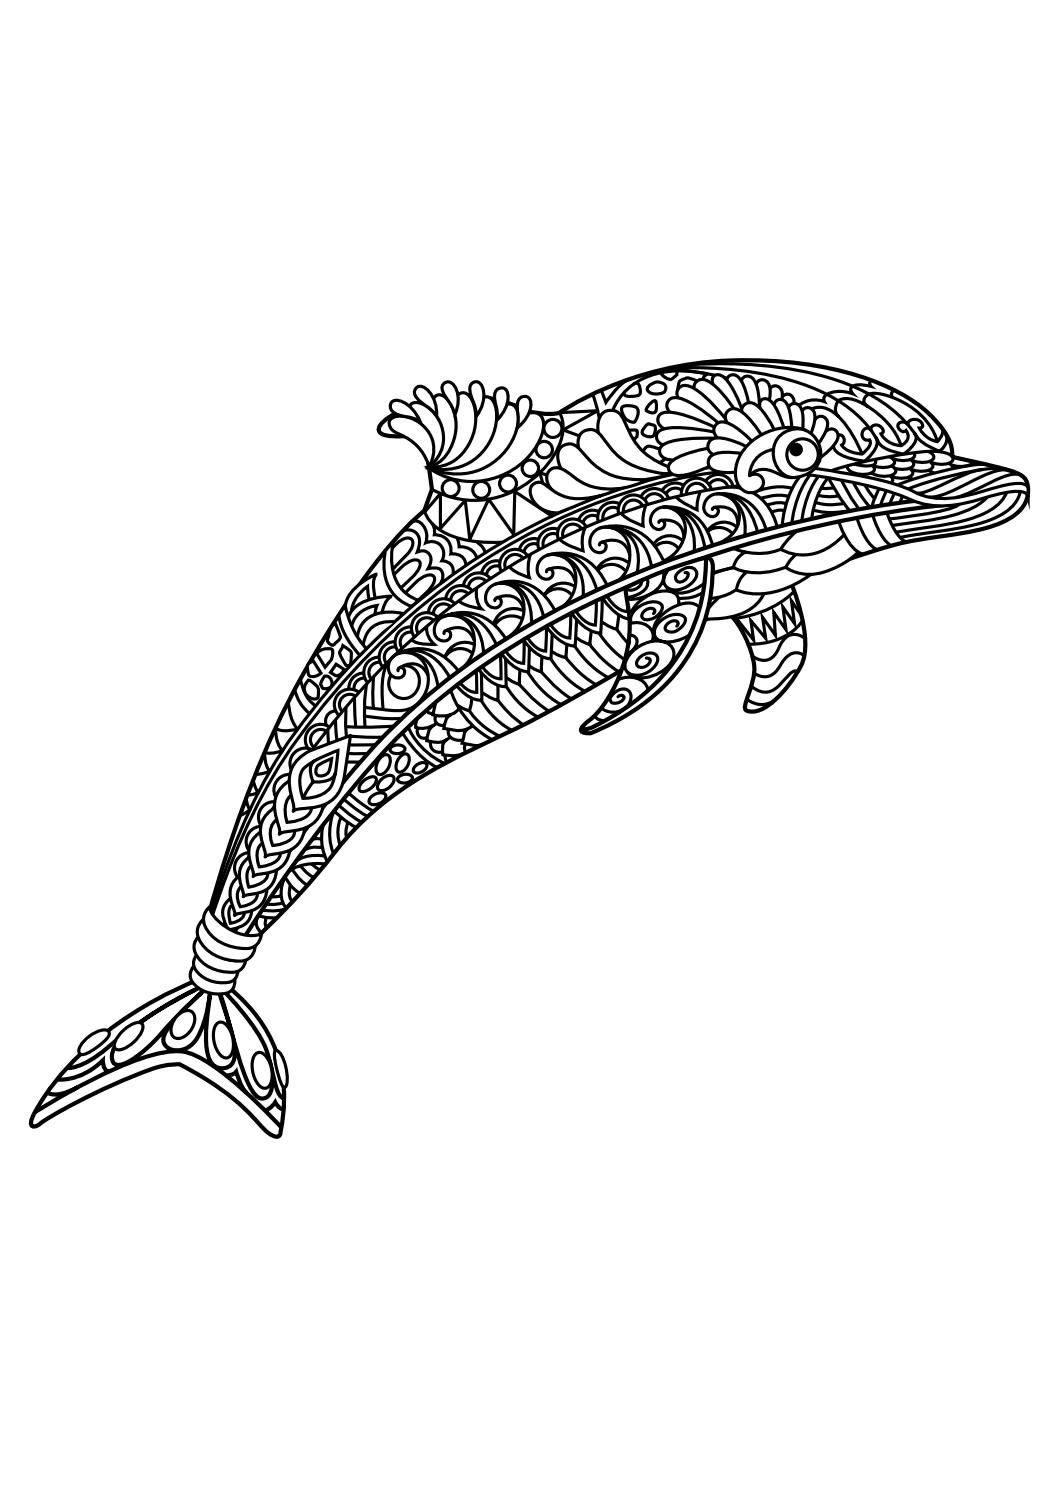 Free coloring pages dolphins - Animal Coloring Pages Pdf Animal Coloring Pages Is A Free Adult Coloring Book With 20 Different